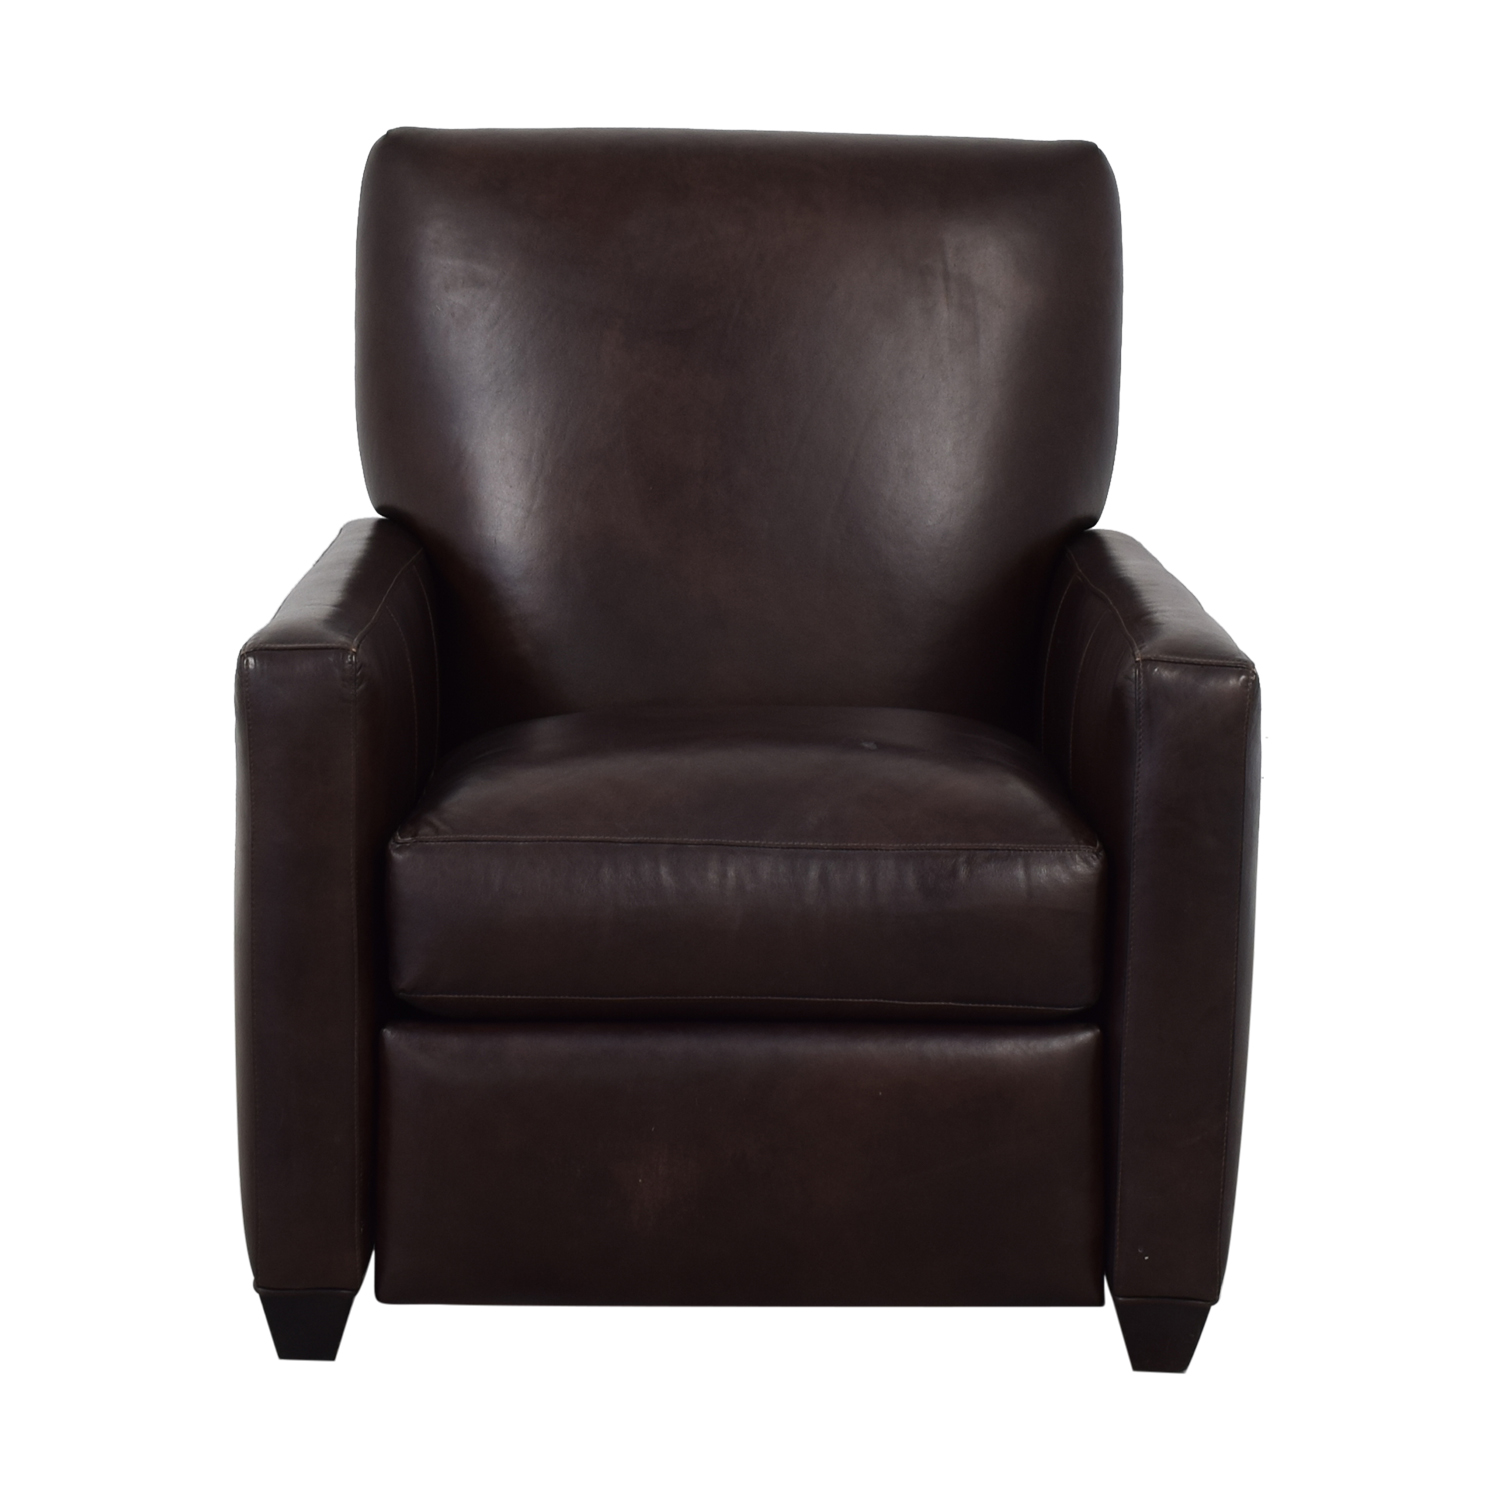 Crate & Barrel Crate & Barrel Brown Recliner discount